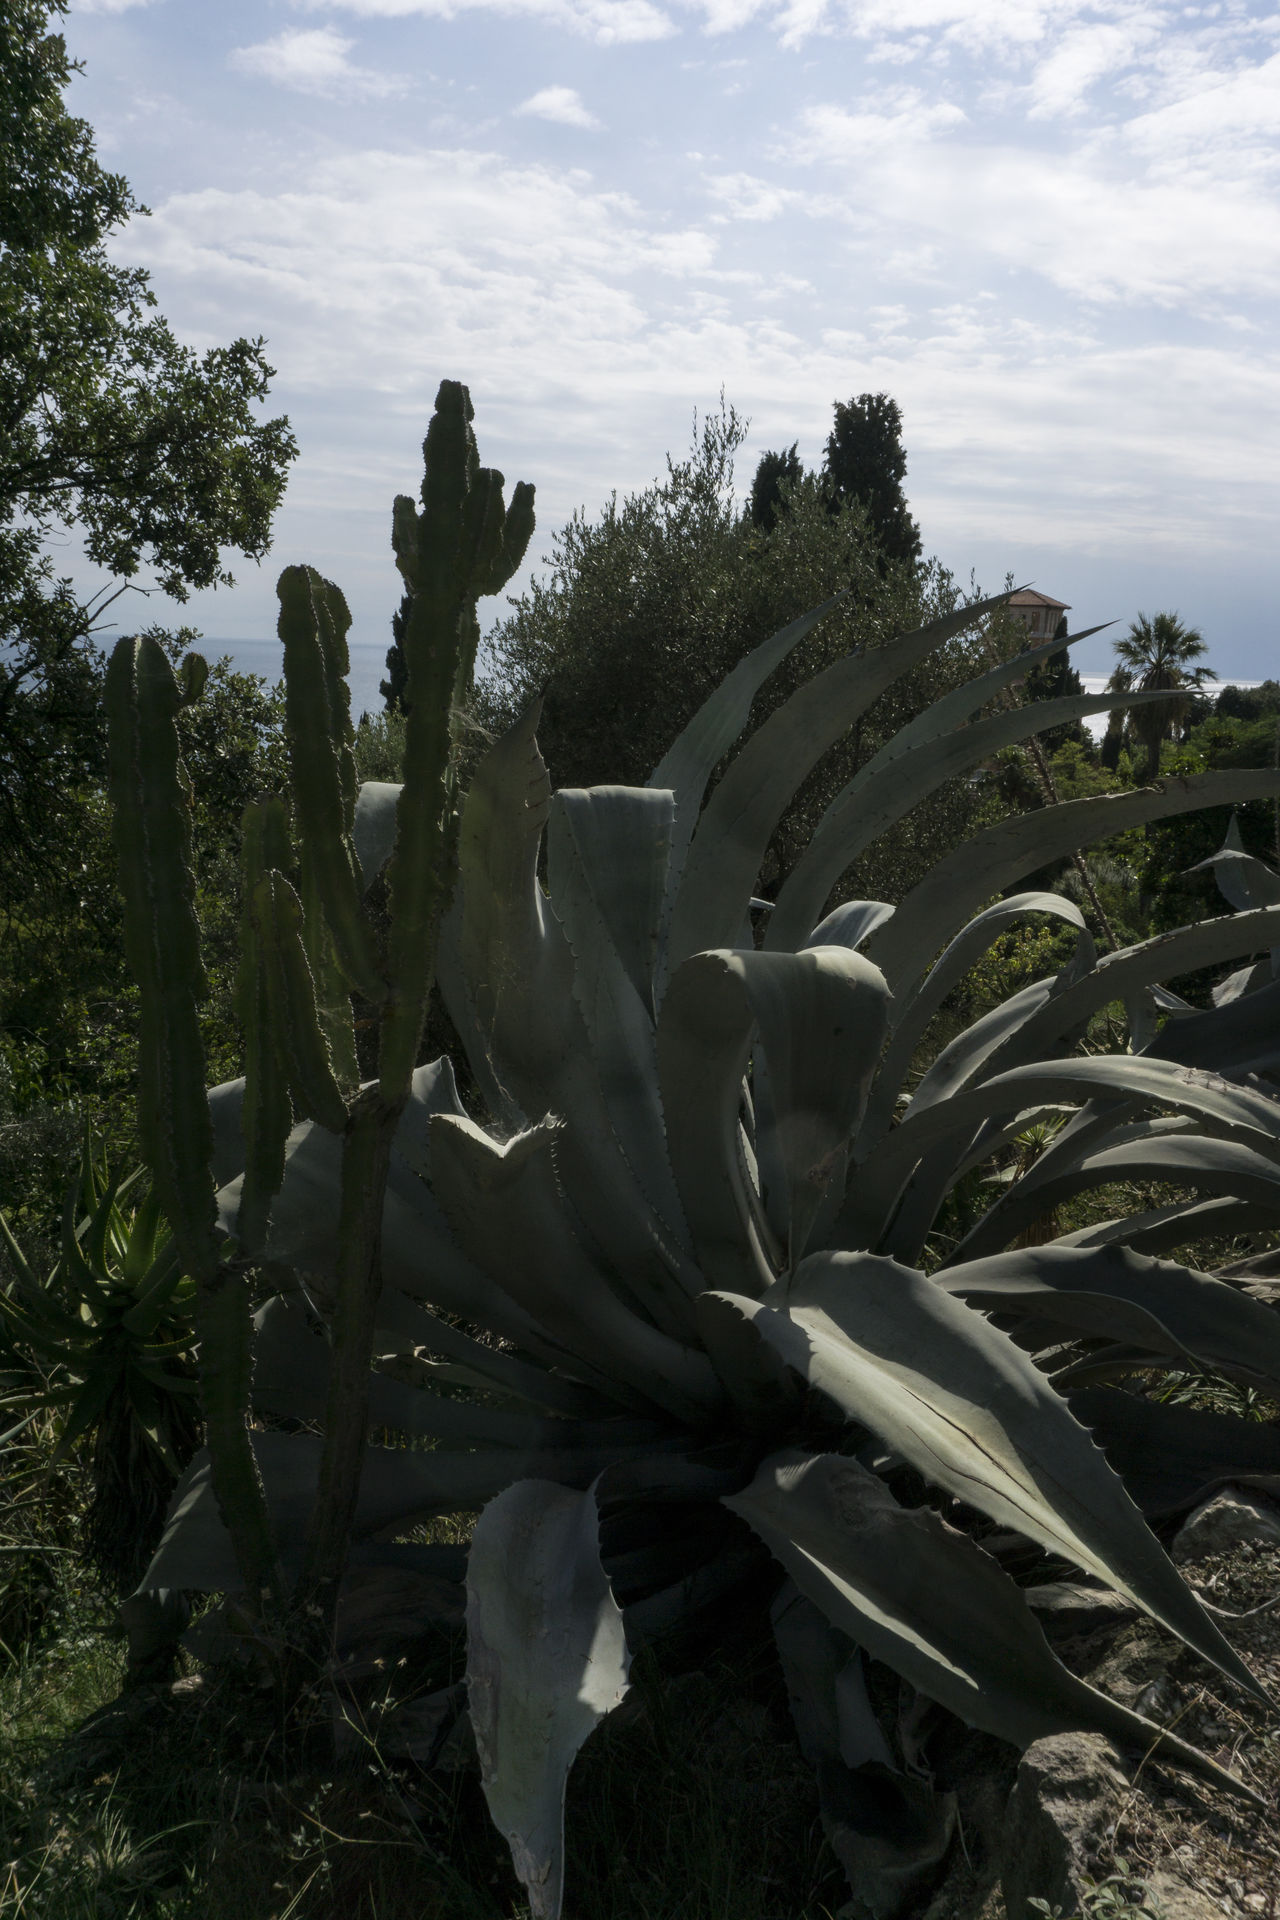 italia Agave Beauty In Nature Botanical Gardens Botanischer Garten Cactus Costa Azzurra Côte D'Azur Day Exotic Plants Giardini Hanbury Giardino Botanico Growth Italia Italie Italien Italy Italy❤️ Italy🇮🇹 Nature No People Outdoors Plant Riviera Sky Ventimiglia